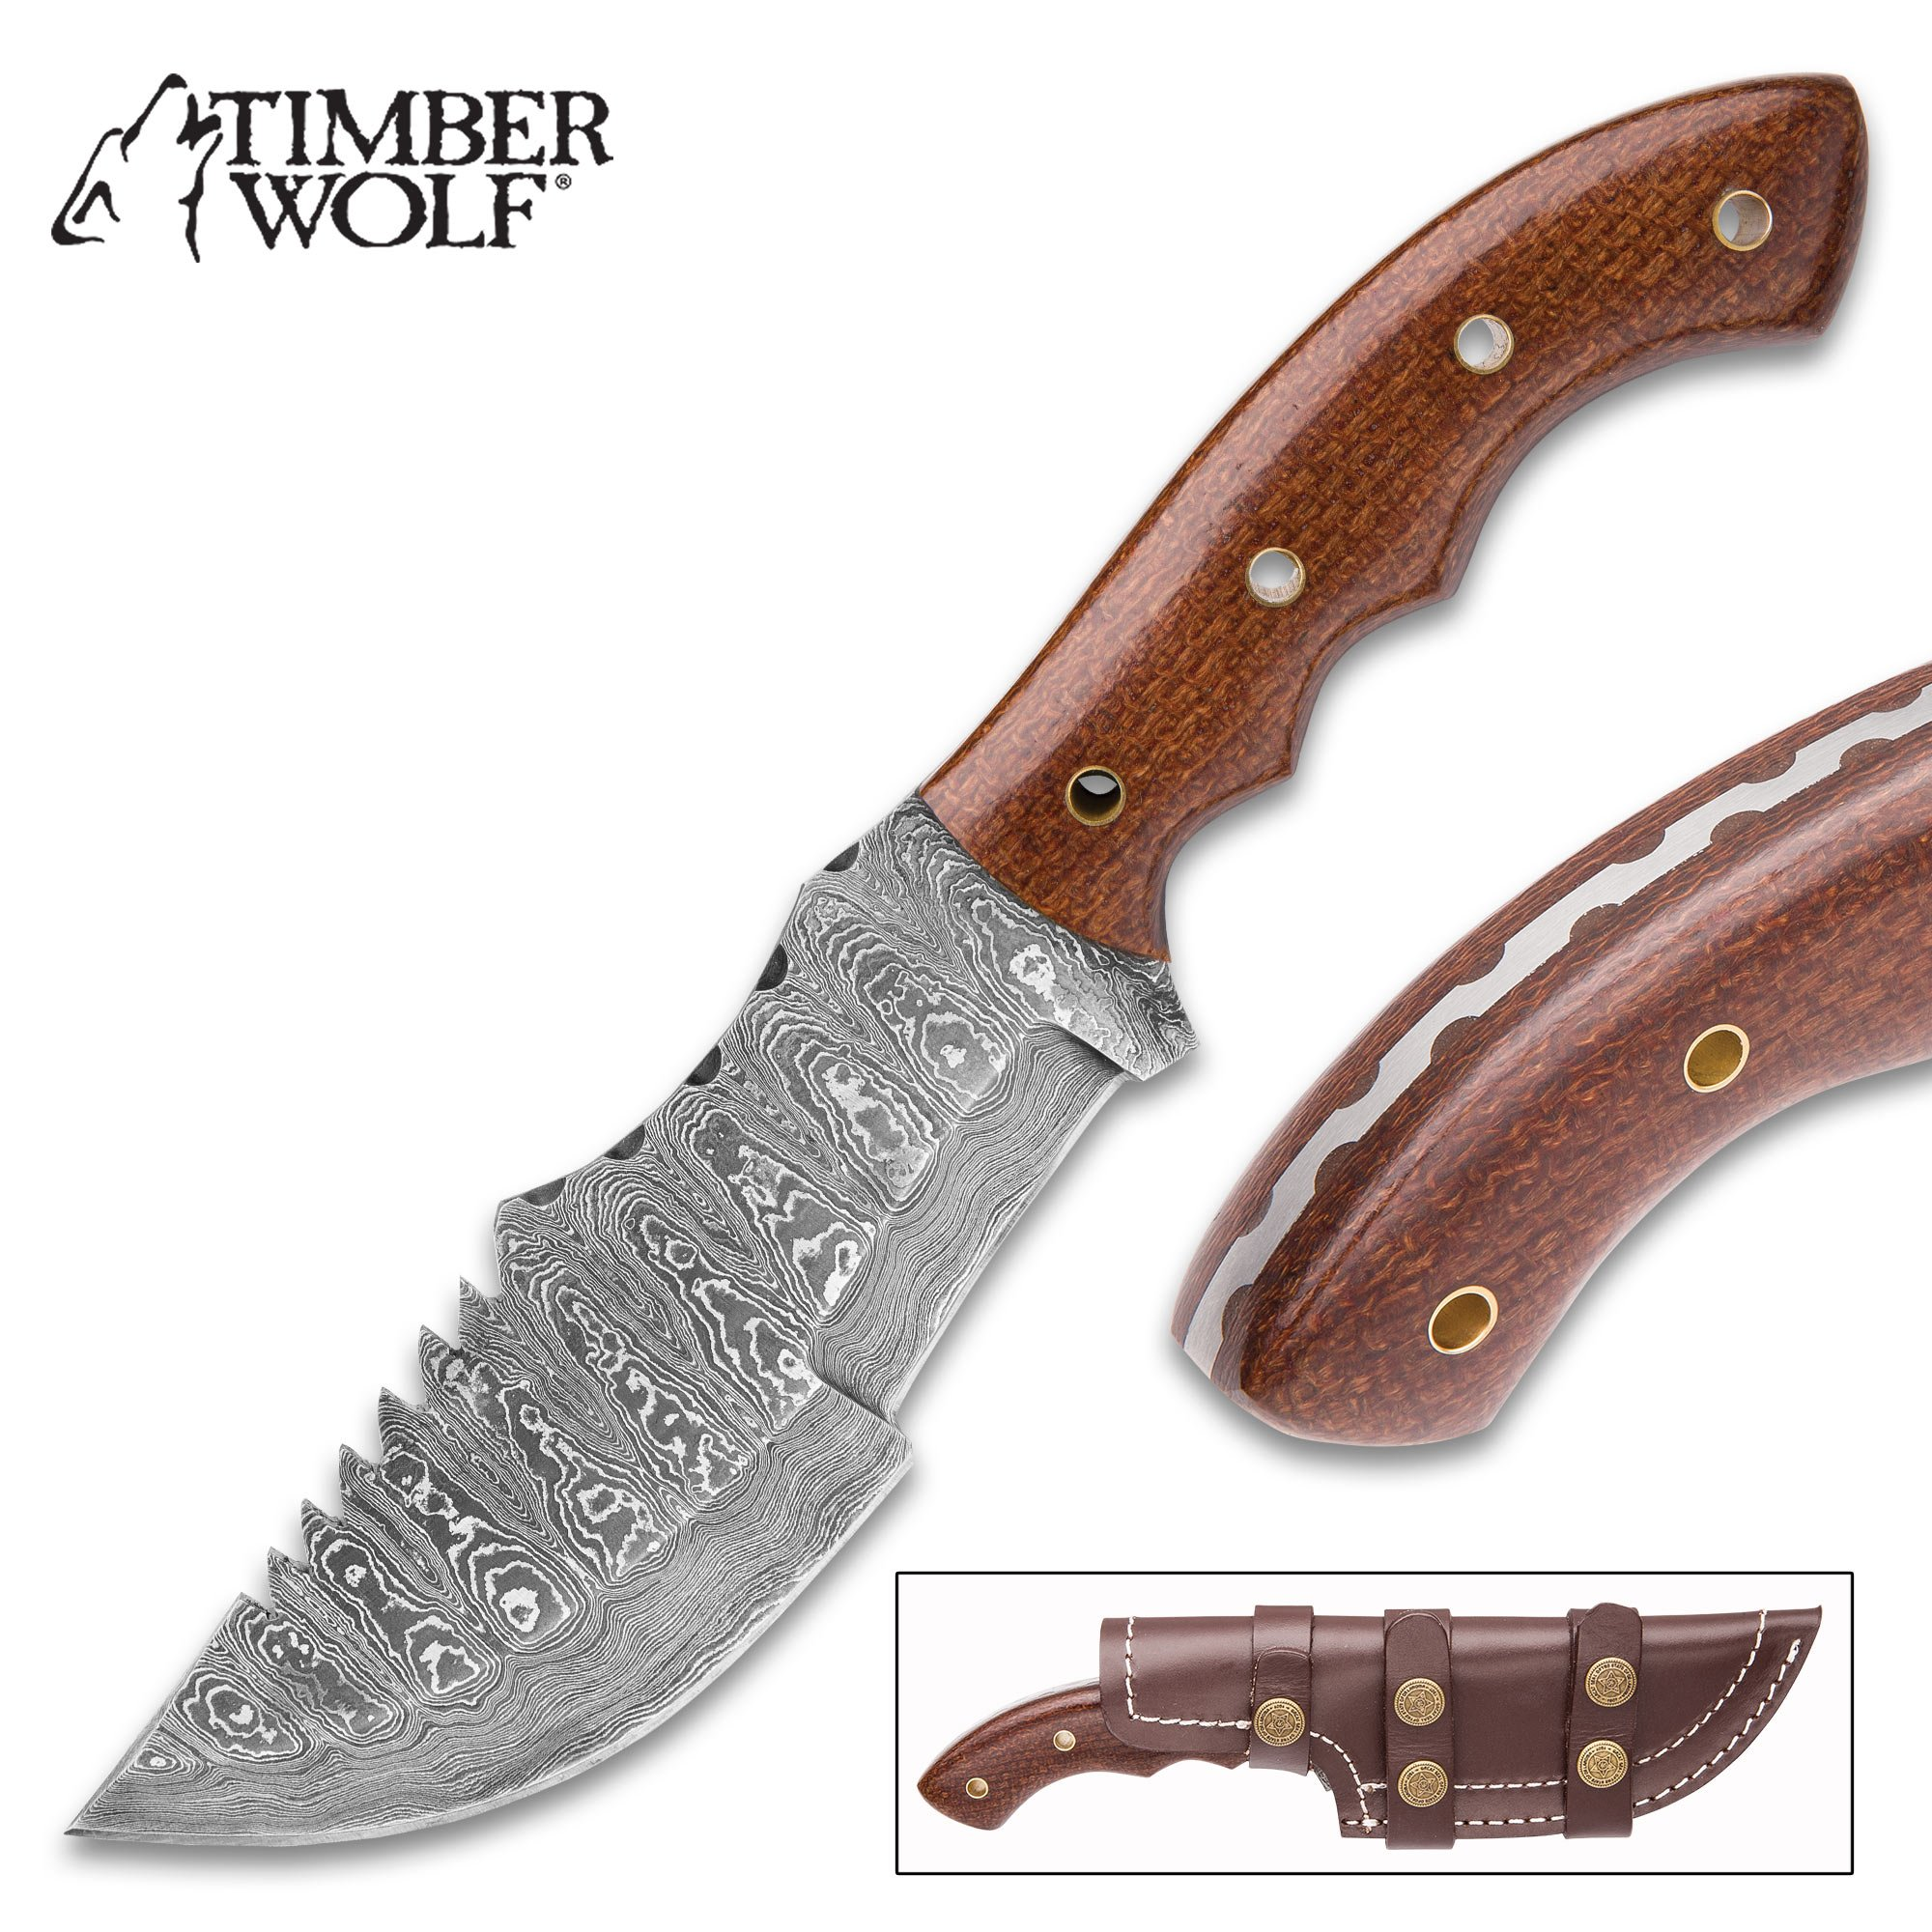 Timber Wolf Walkabout Fixed Blade Knife - Hand Forged Damascus Steel - Full Tang - Burlap Micarta - Genuine Leather Sheath - Bowie Tracker Survival Multipurpose Utility Outdoors Chop Saw - 9 3/4'' by Timber Wolf (Image #1)